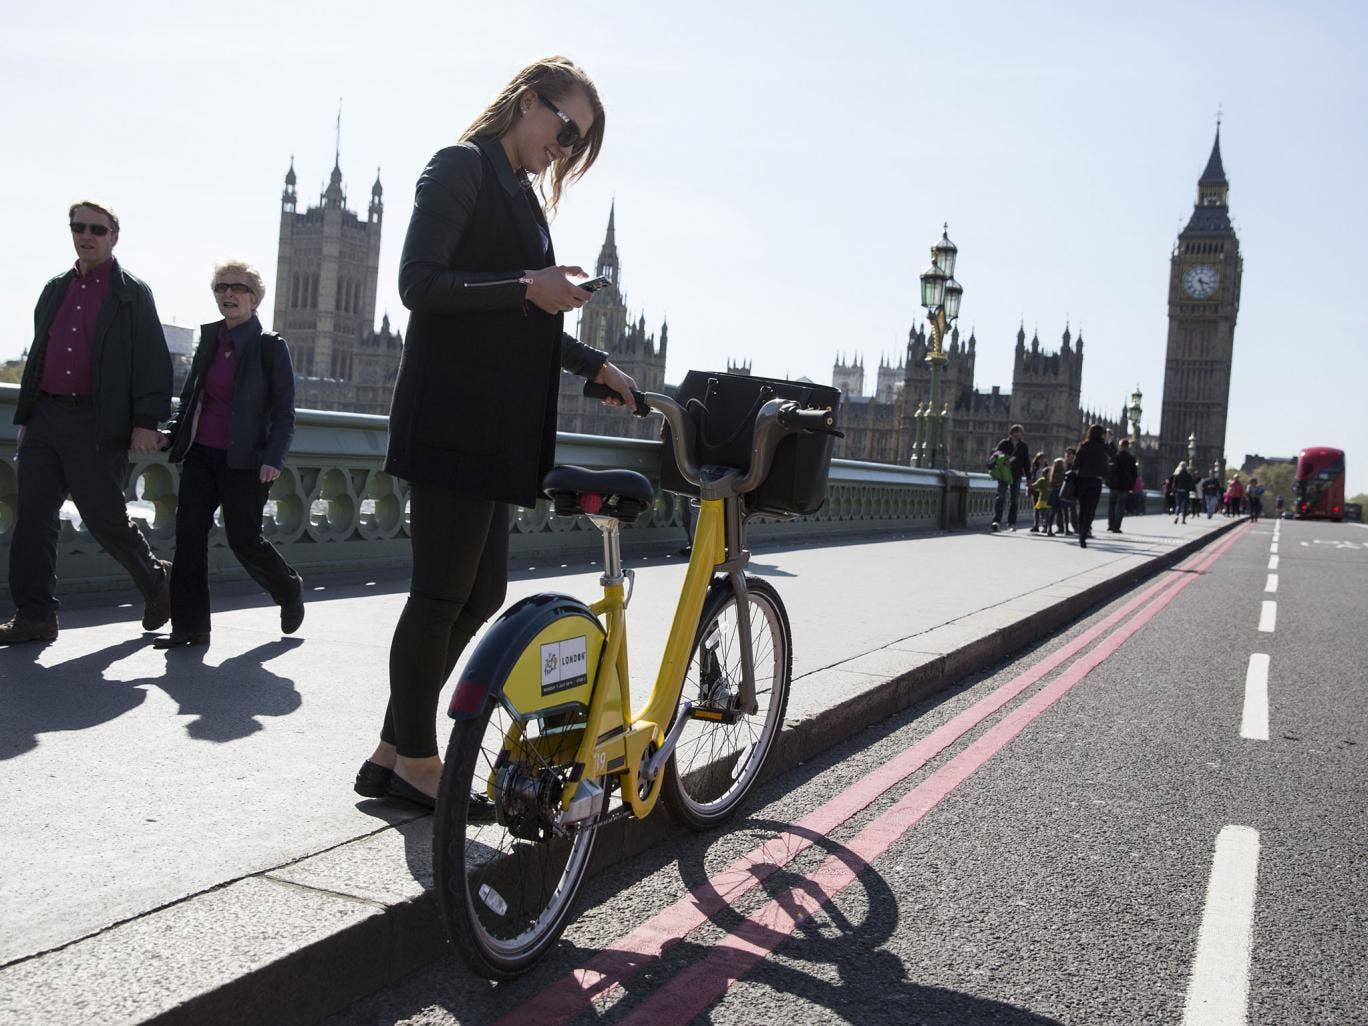 Tyred out: should fair weather cyclists have a separate slow lane?